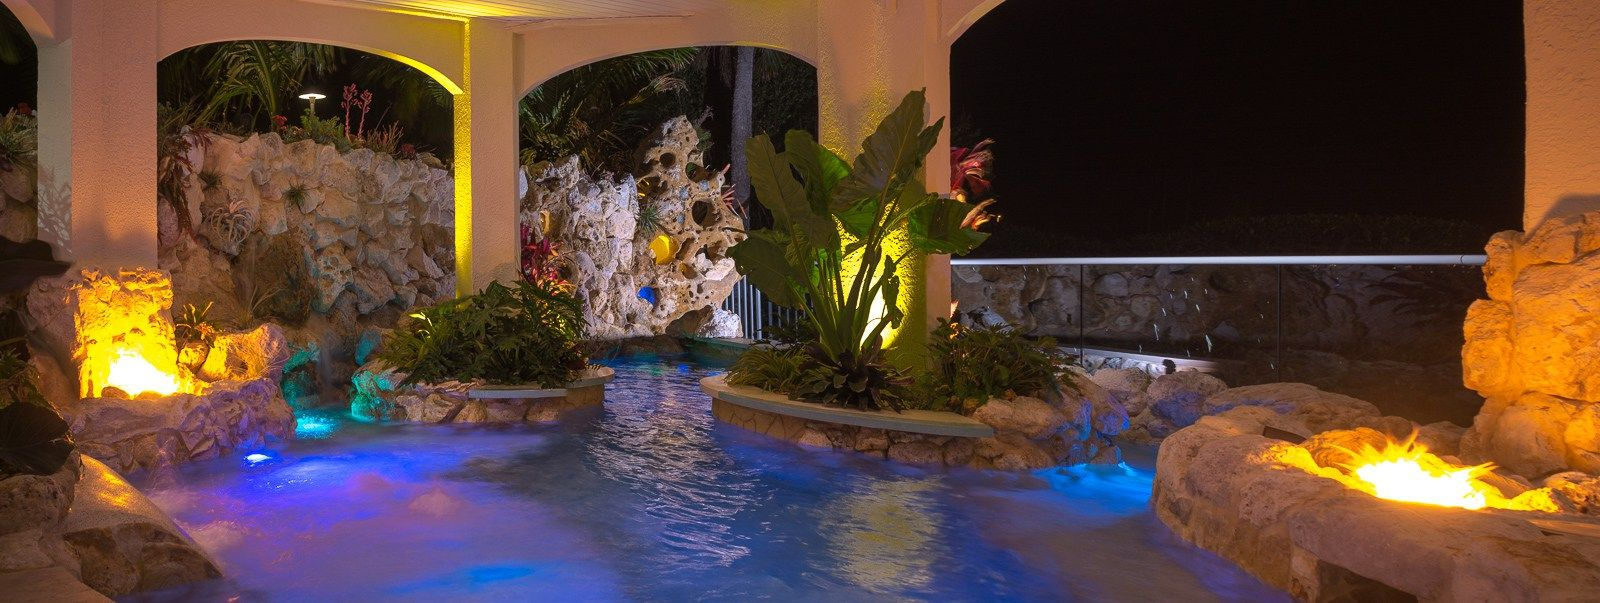 Living Under The Sea Lucas Lagoons Custom Pools Insane Pools Fire Features